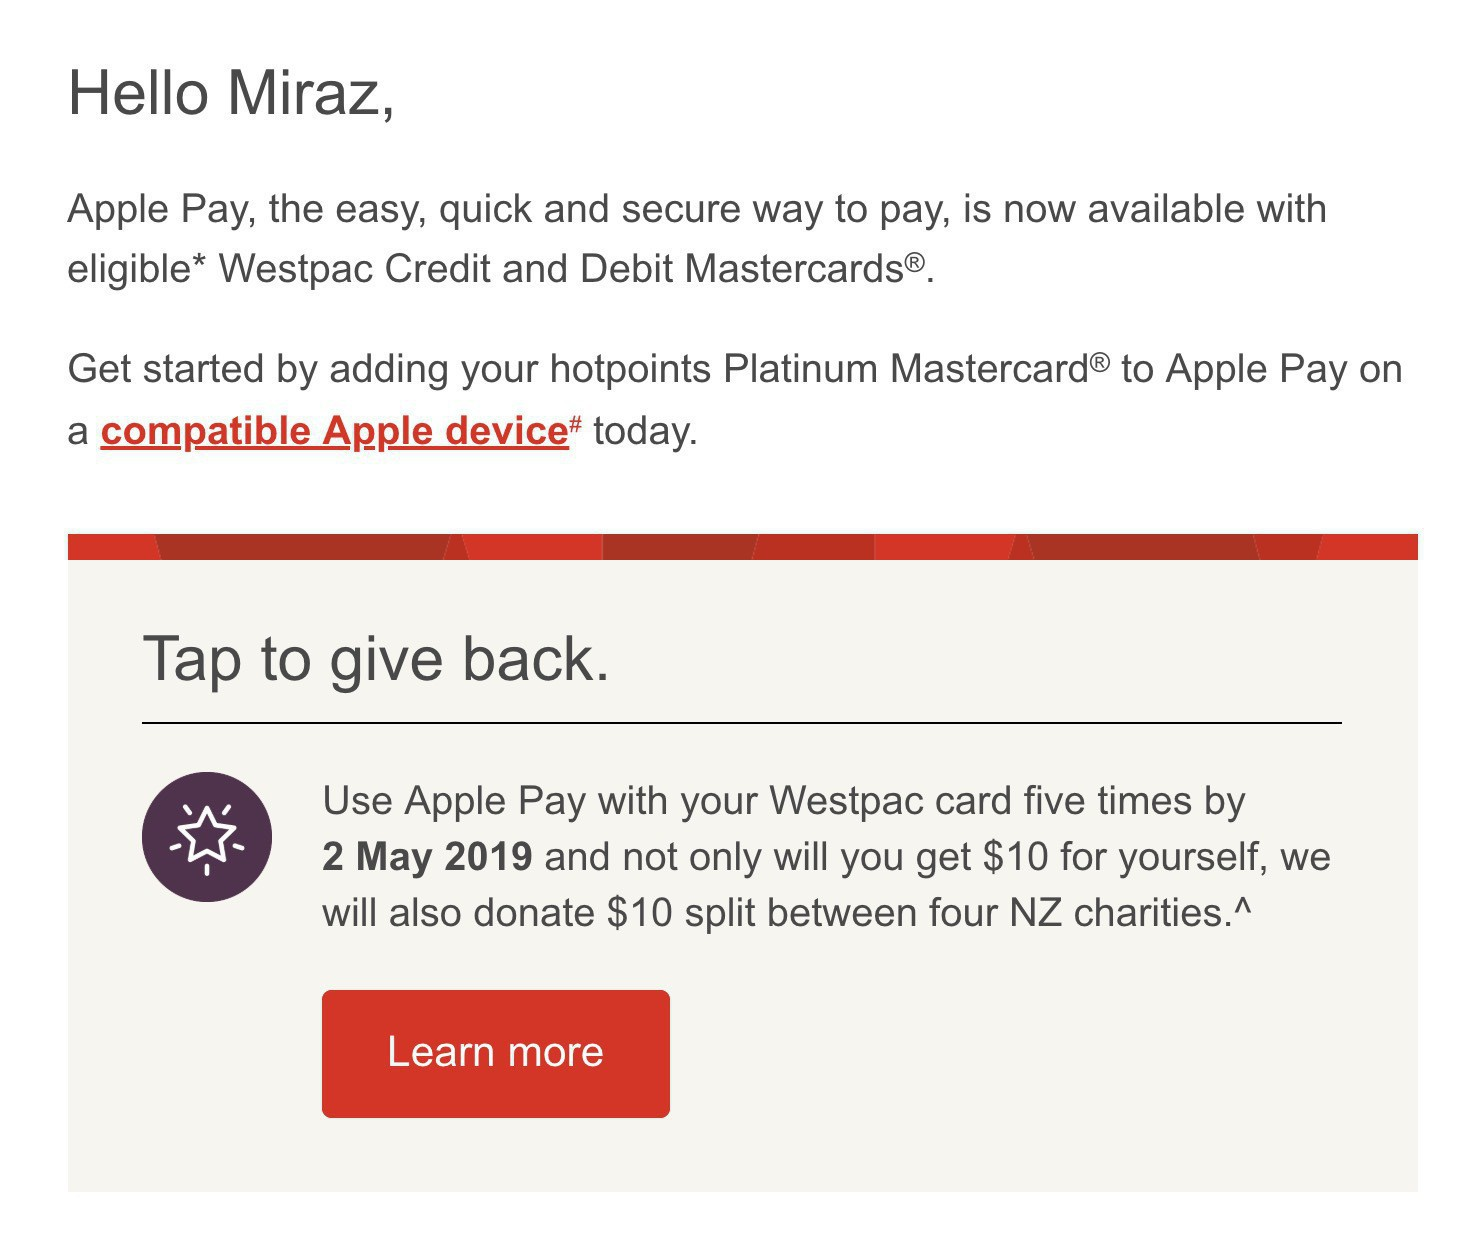 Screenshot from email: Apple Pay is now available with Westpac in New Zealand.